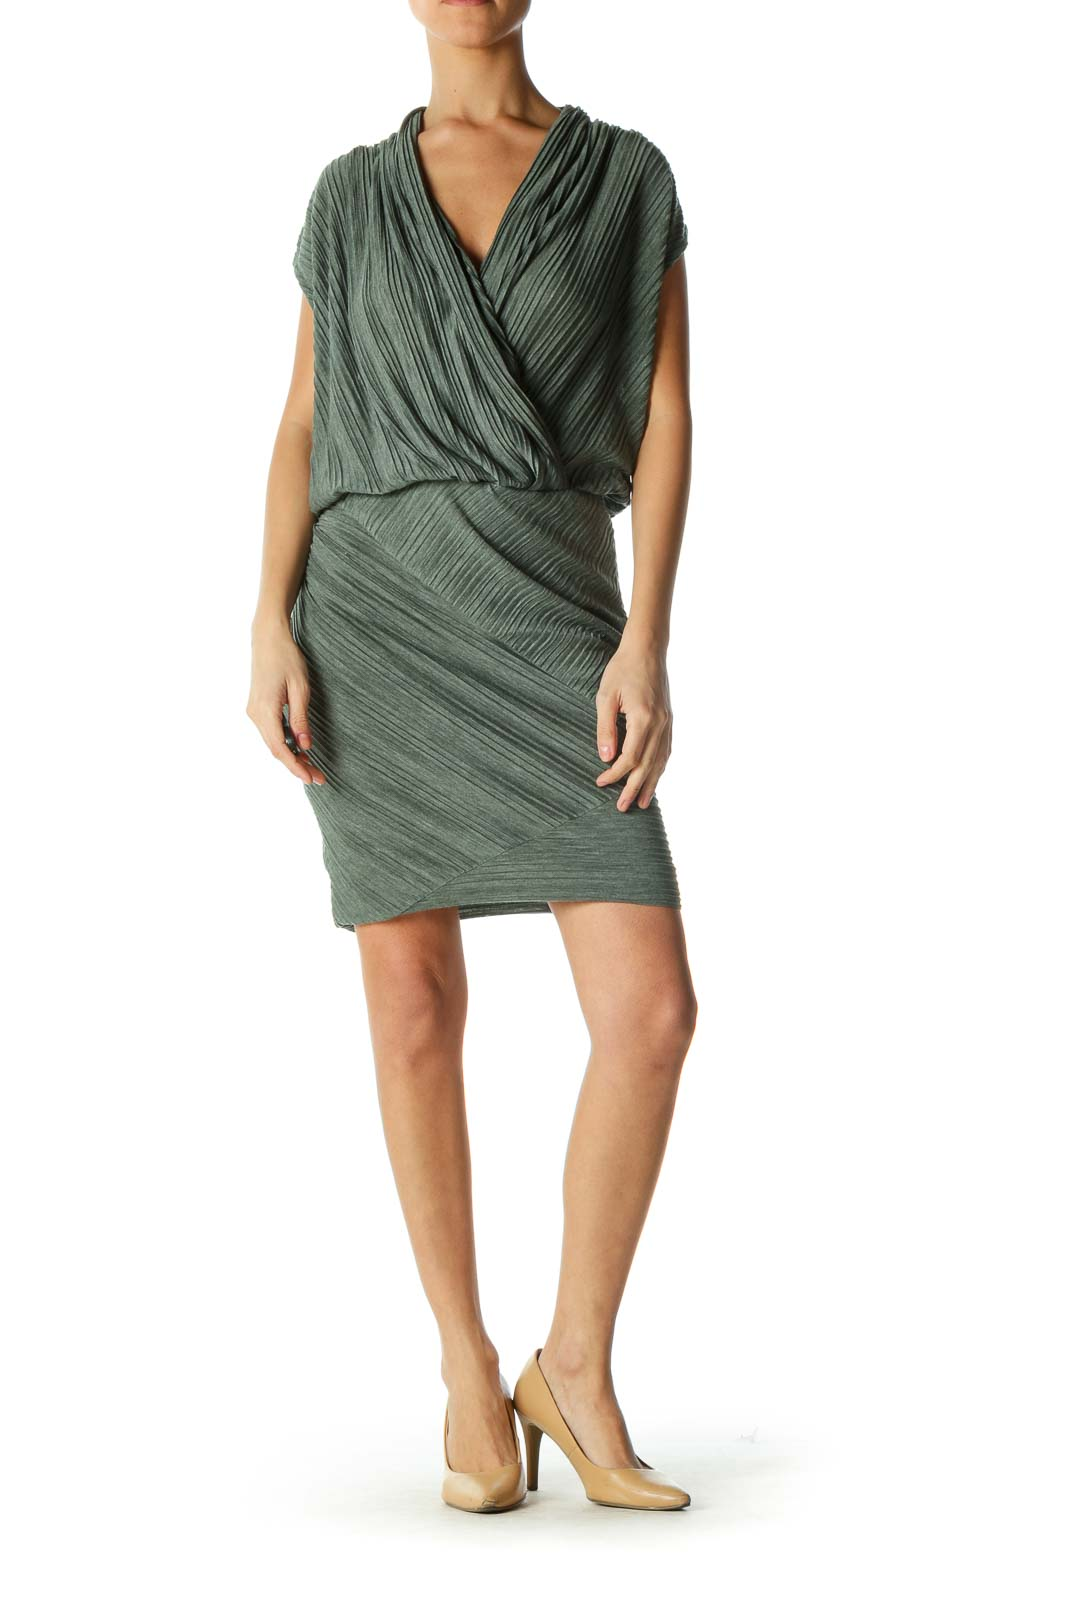 Green V-neck Dress